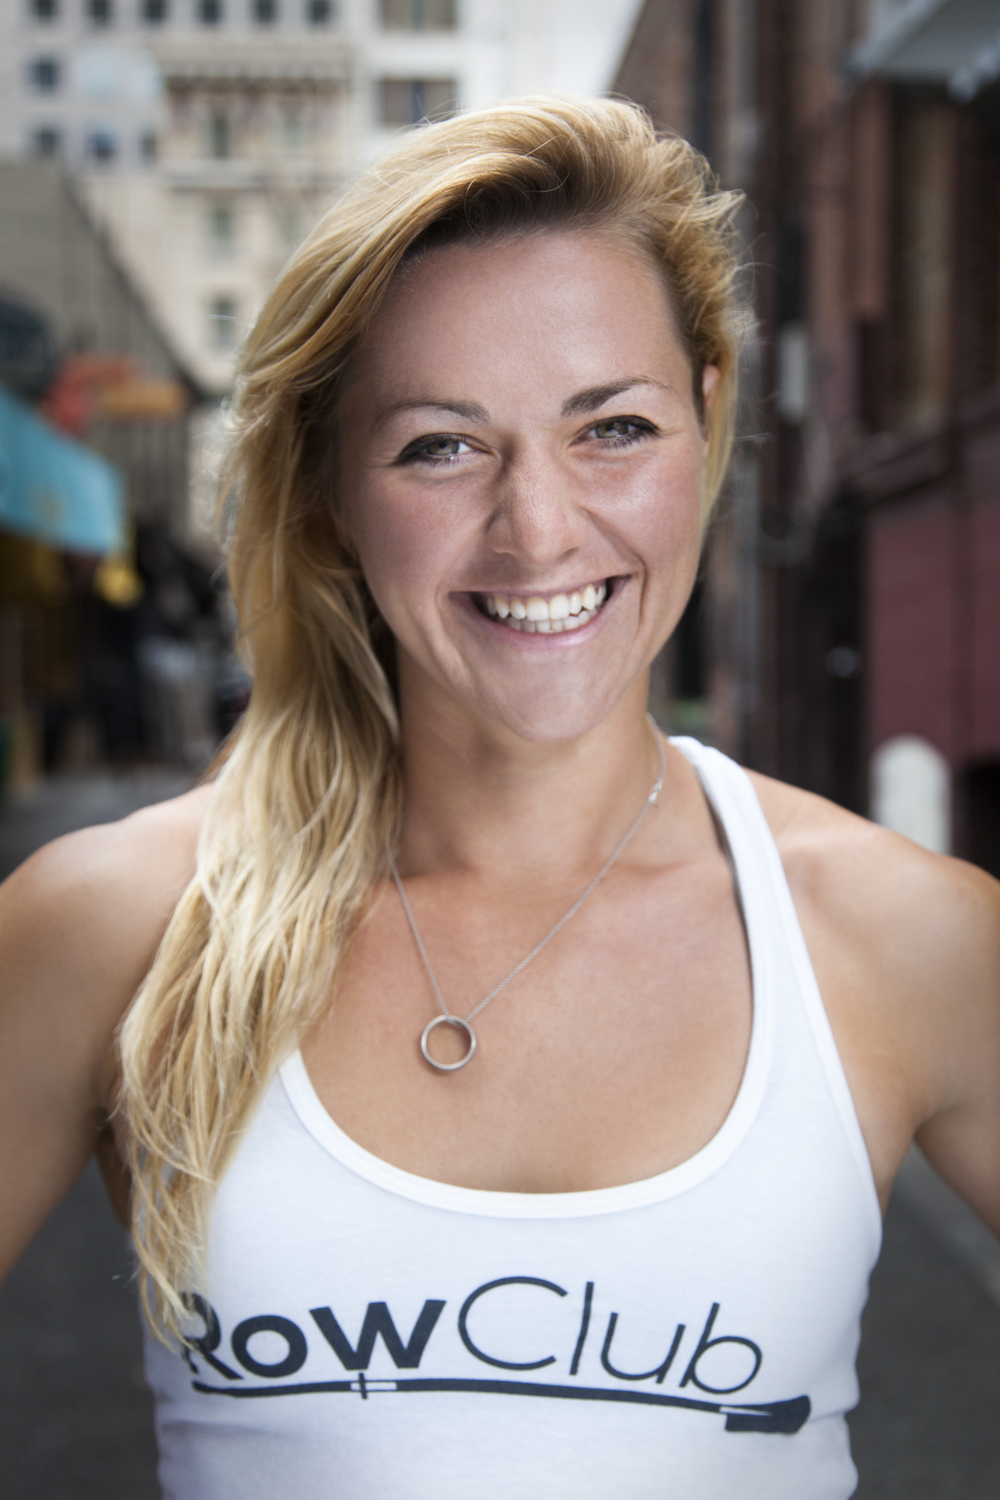 Maggie S. National Champion Rower and Fitness Instructor